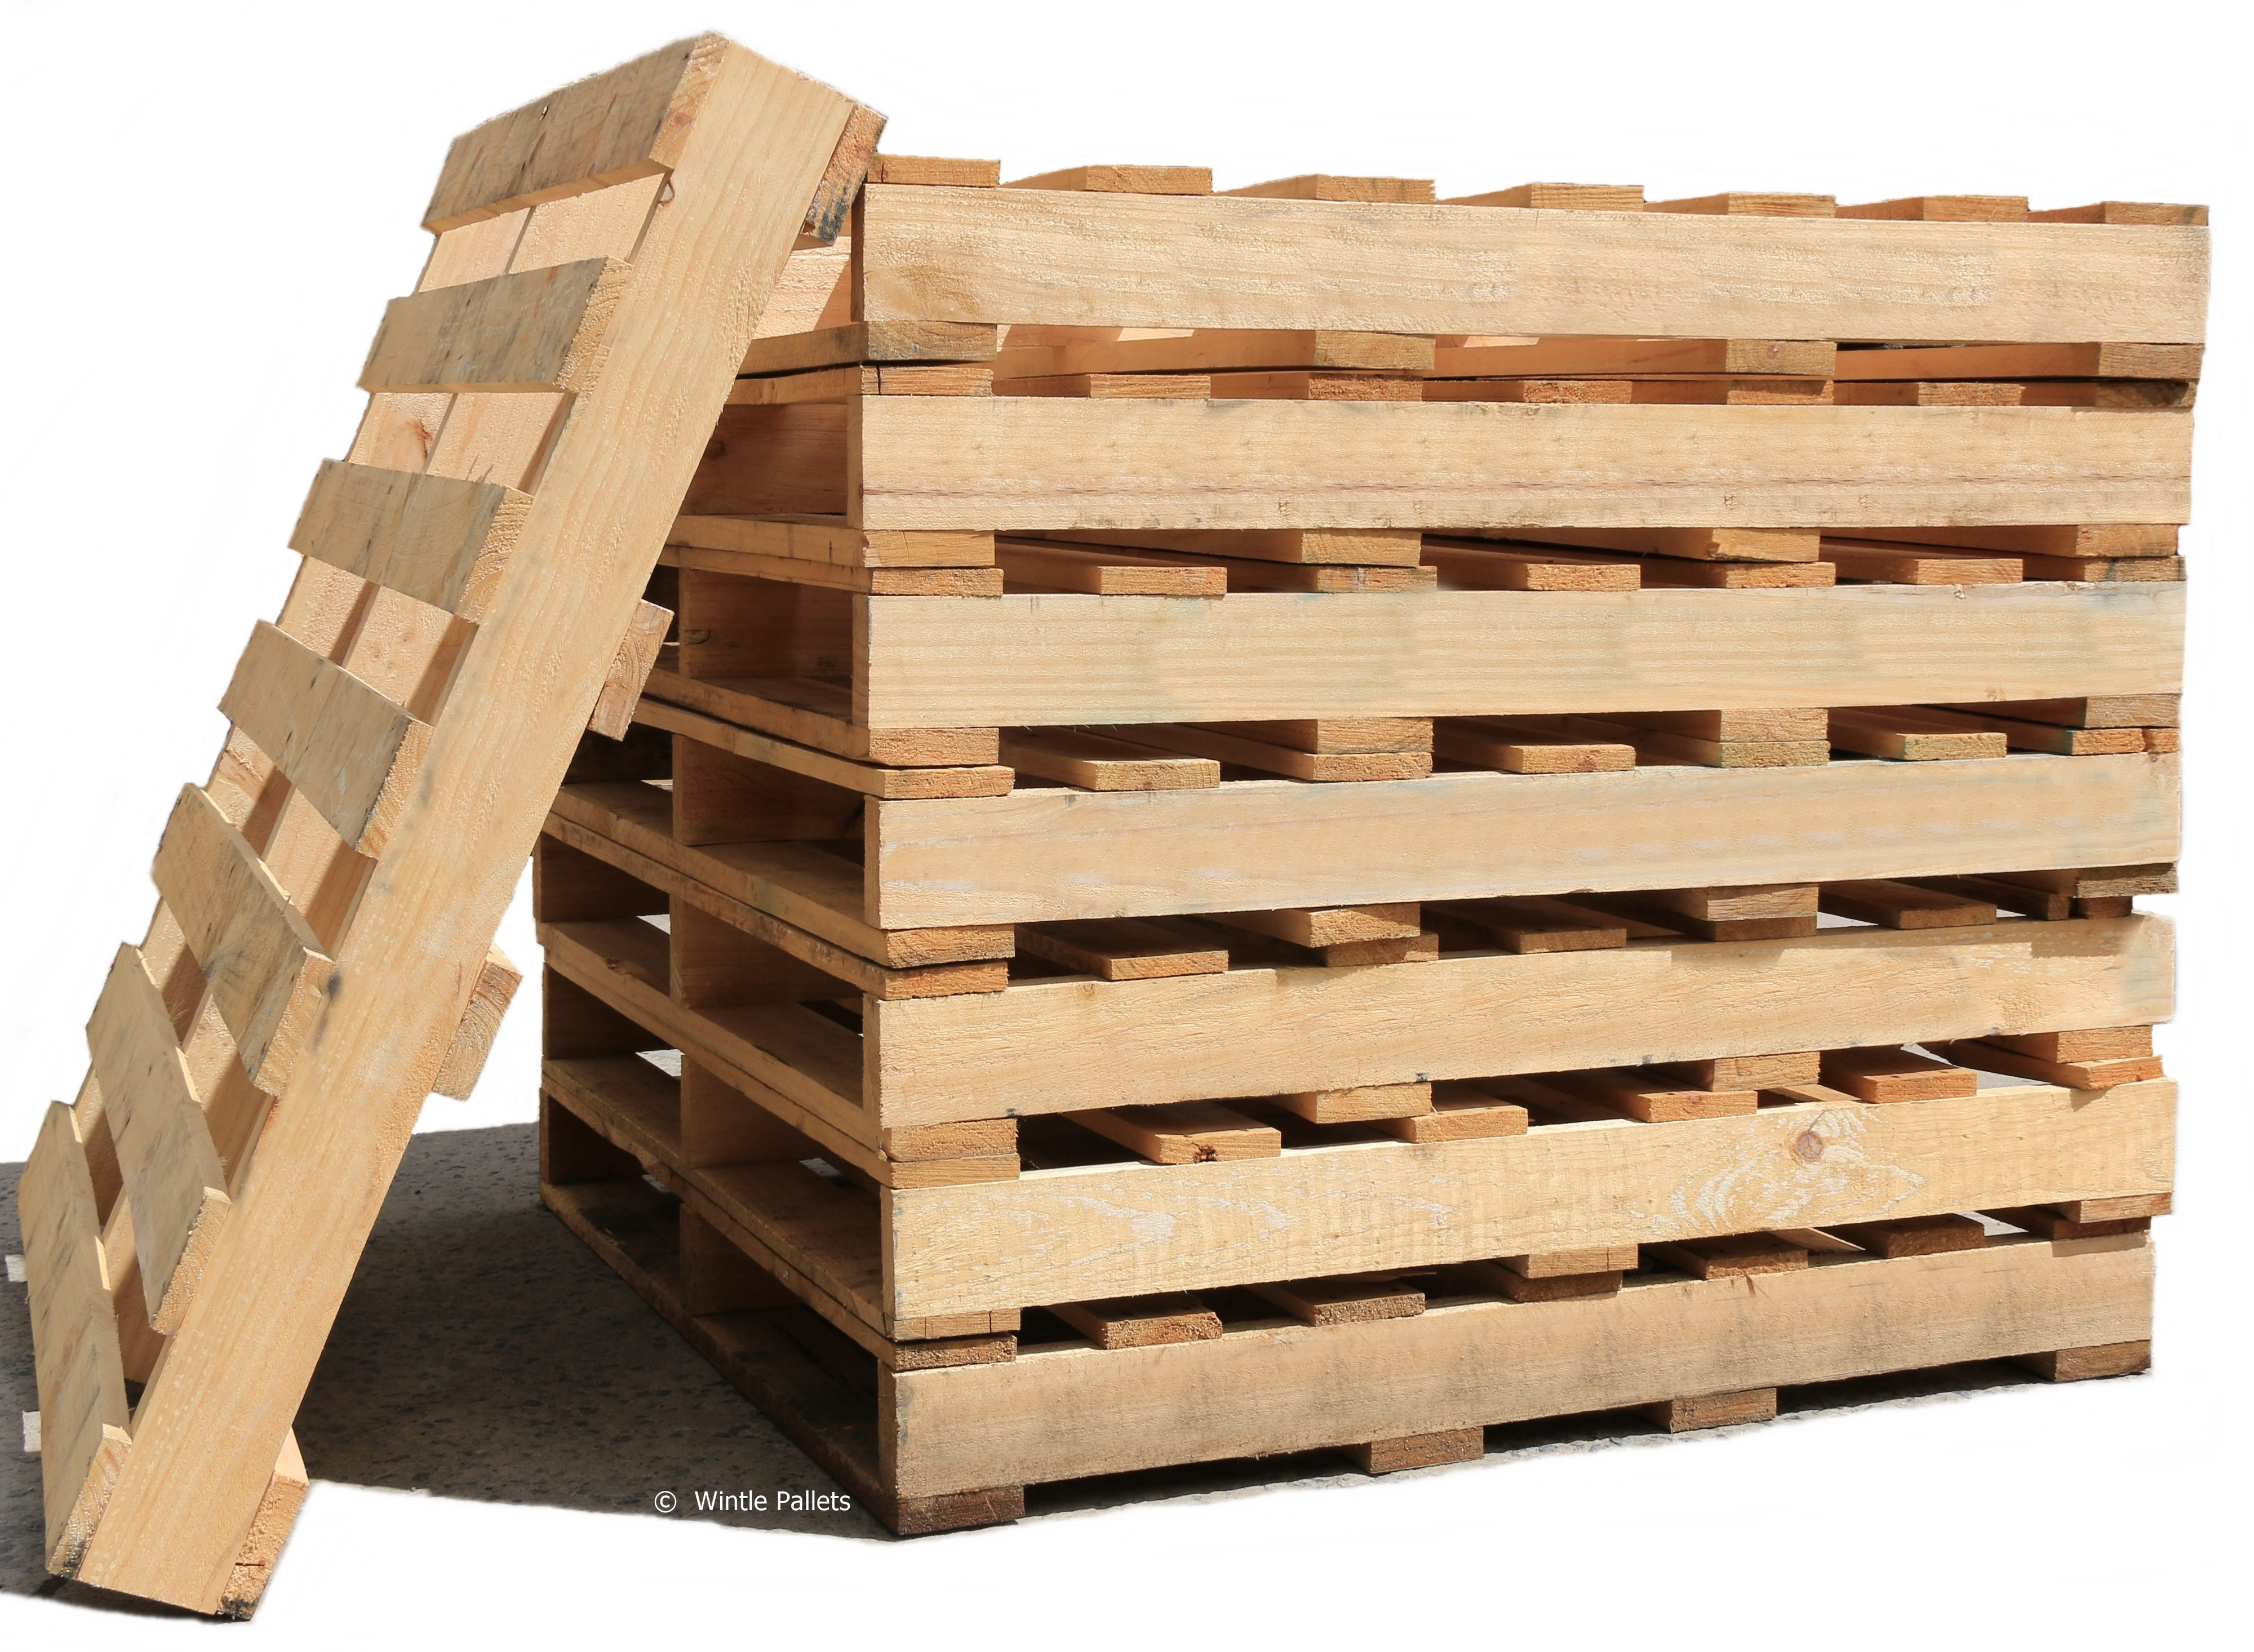 Traditional Wooden Pallets Vs Molded Press wood Pallets